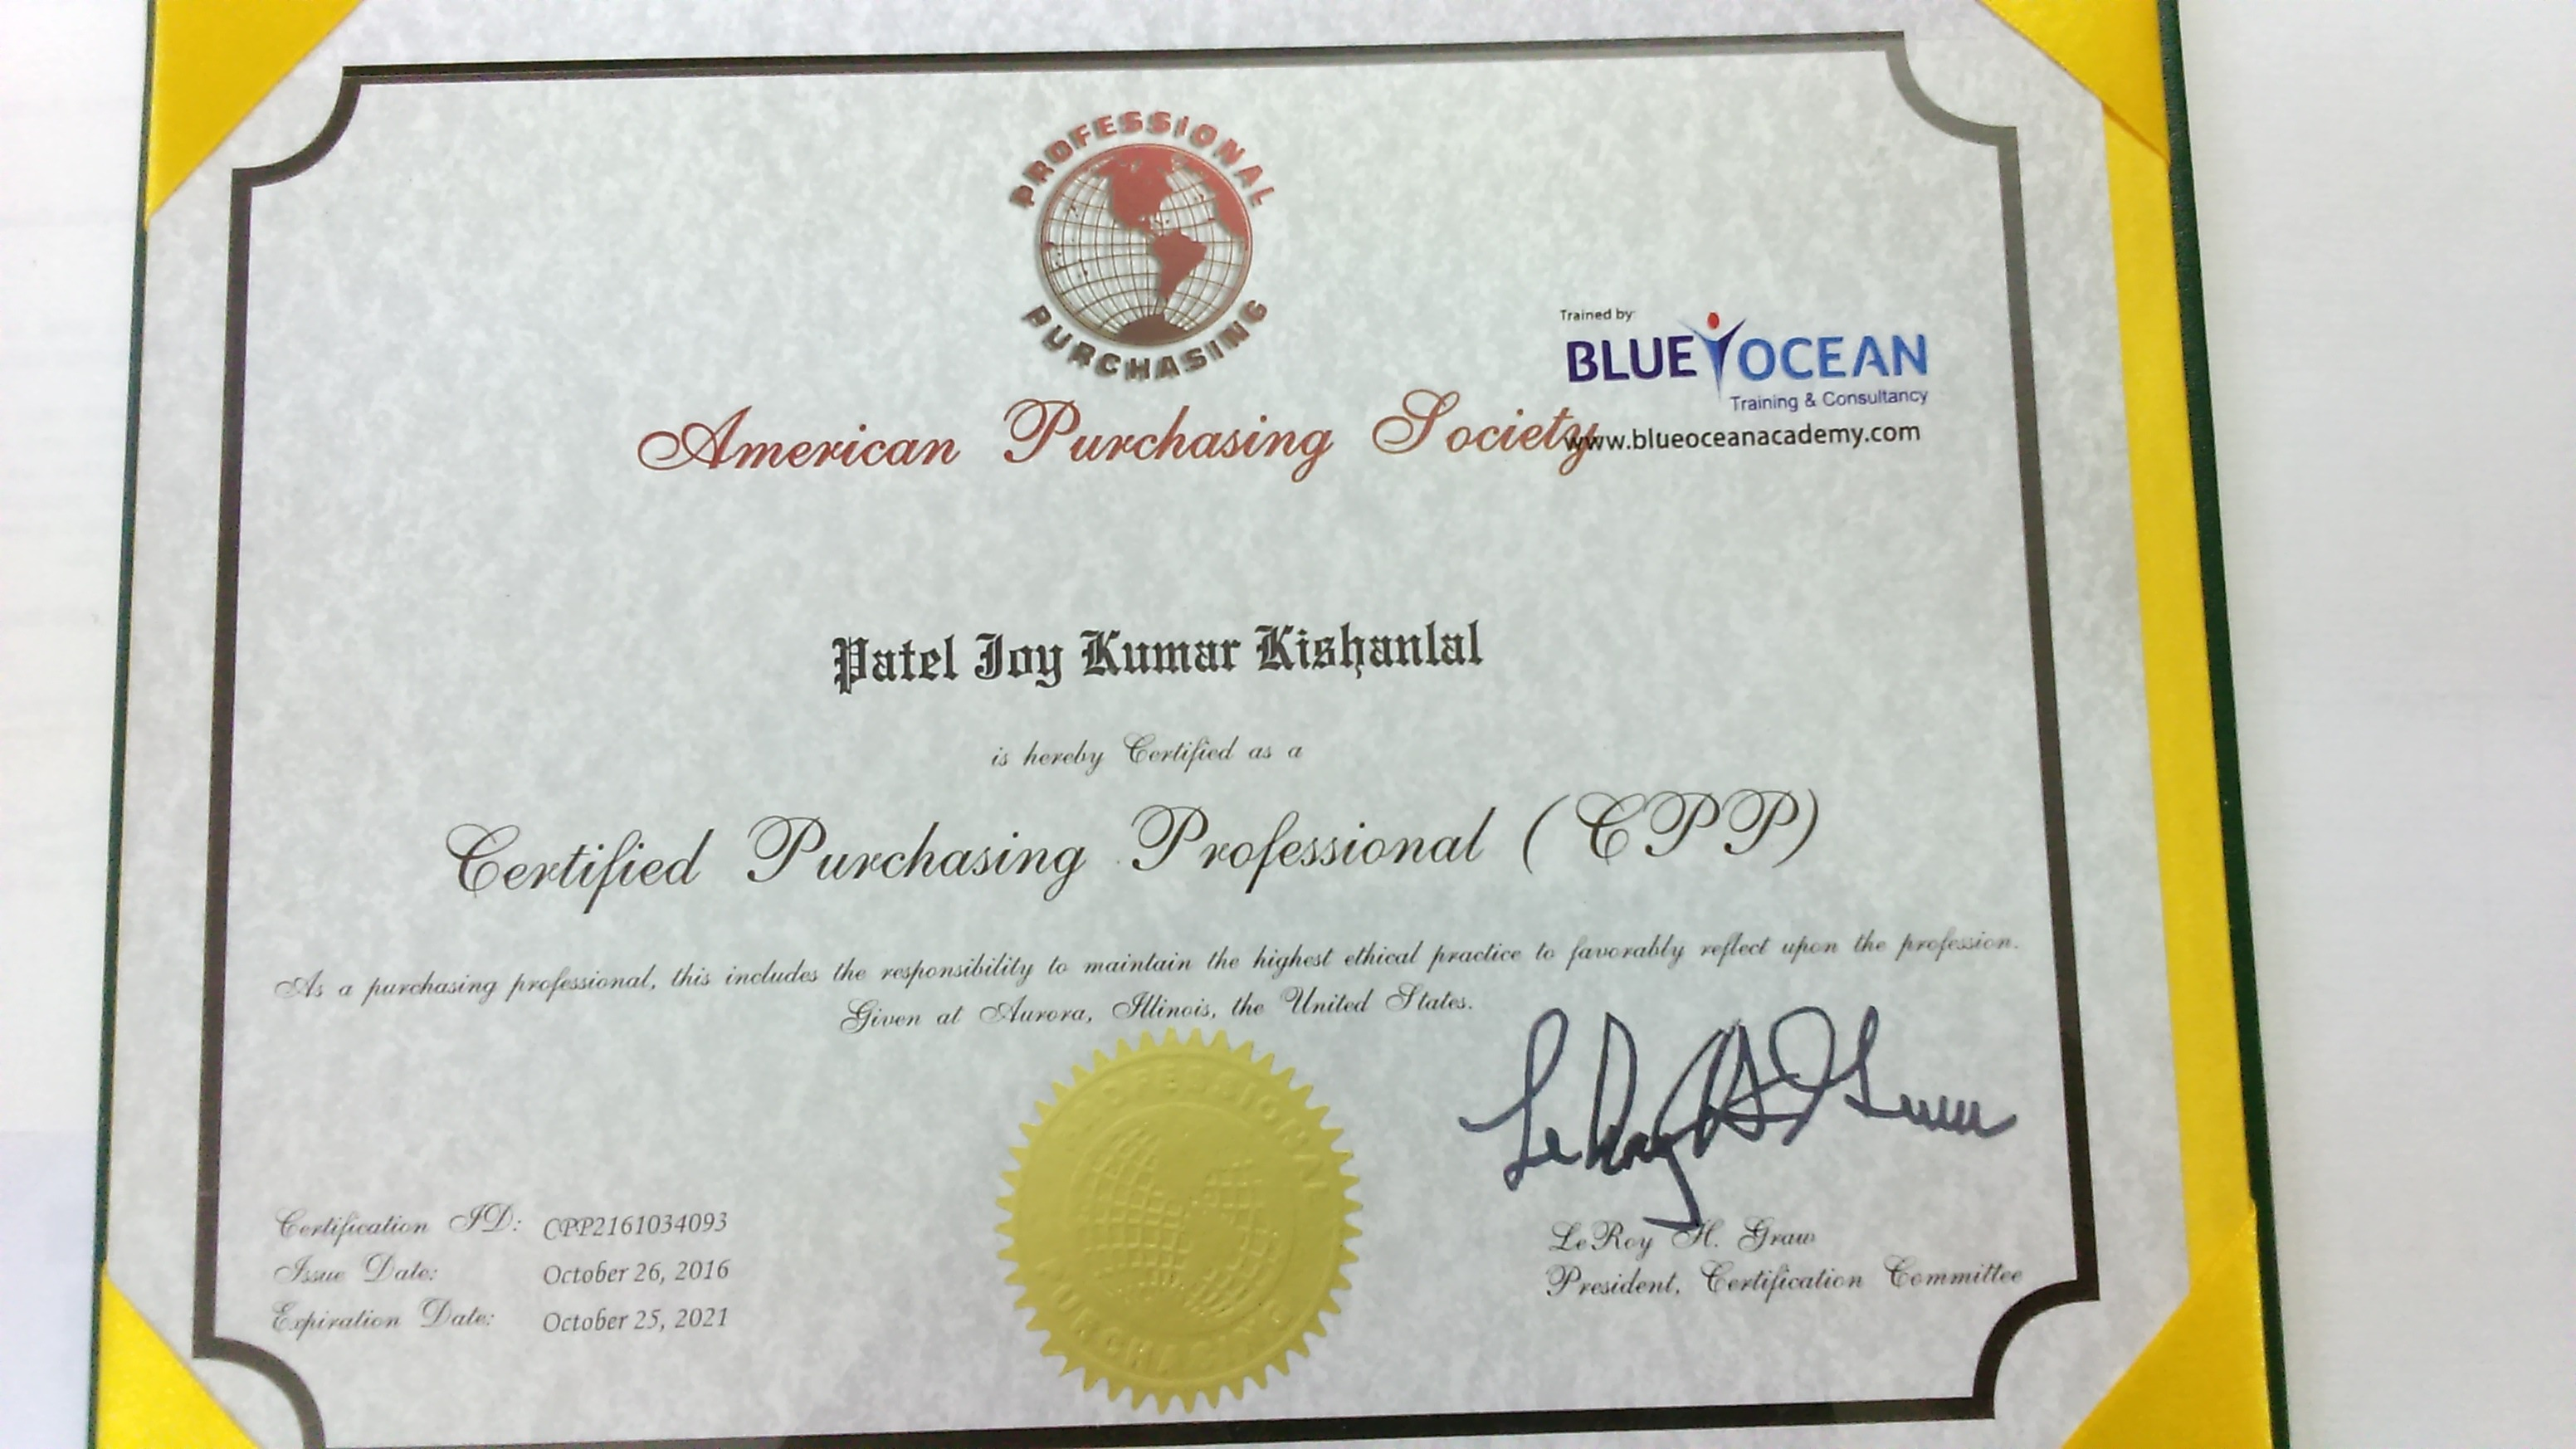 Joy patel bayt higher diploma certified purchasing professional cpp xflitez Image collections